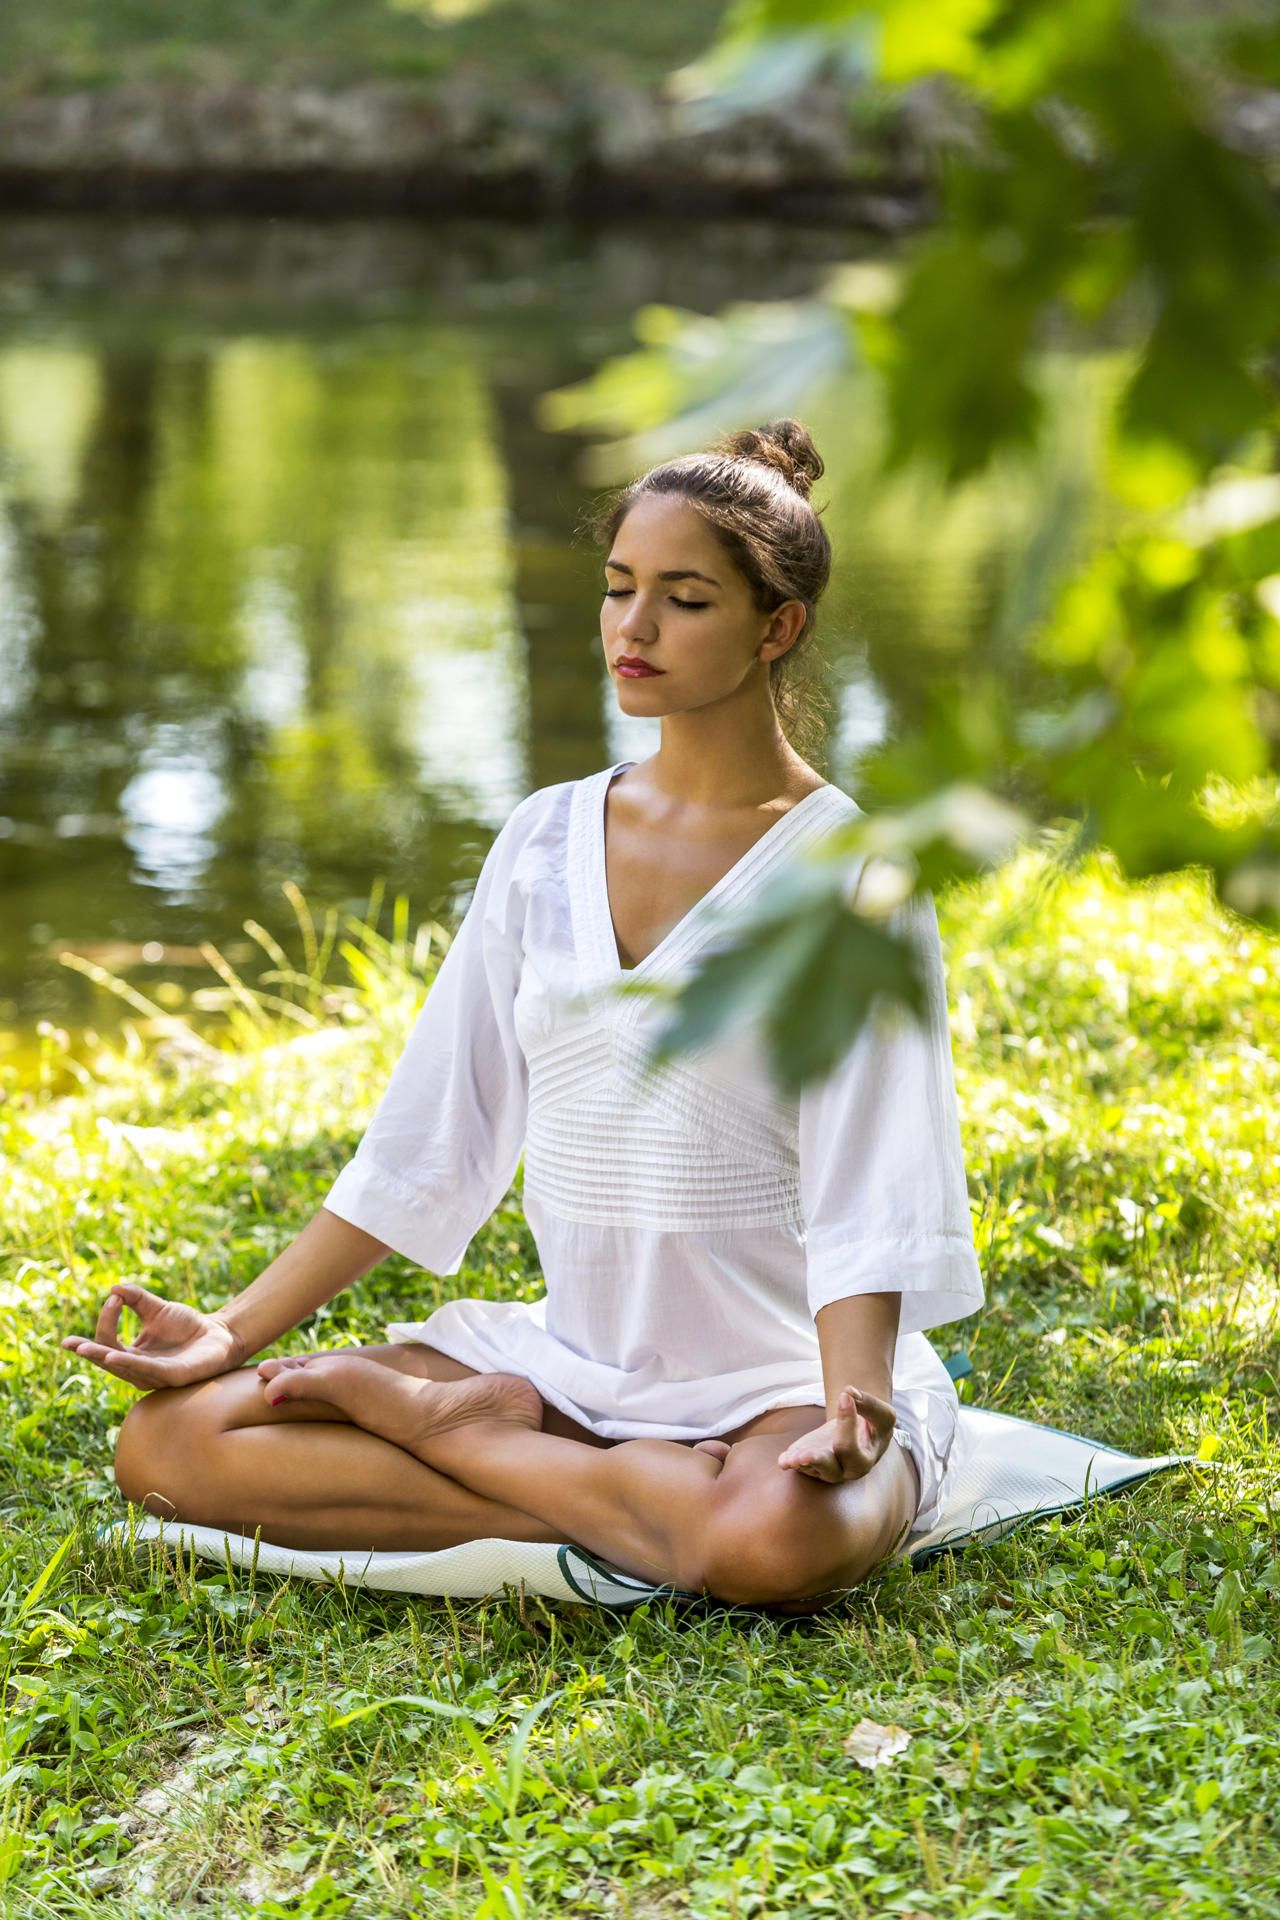 Breathing Exercises To Improve Lung Capacity Lunges Breathing Exercises Good Posture